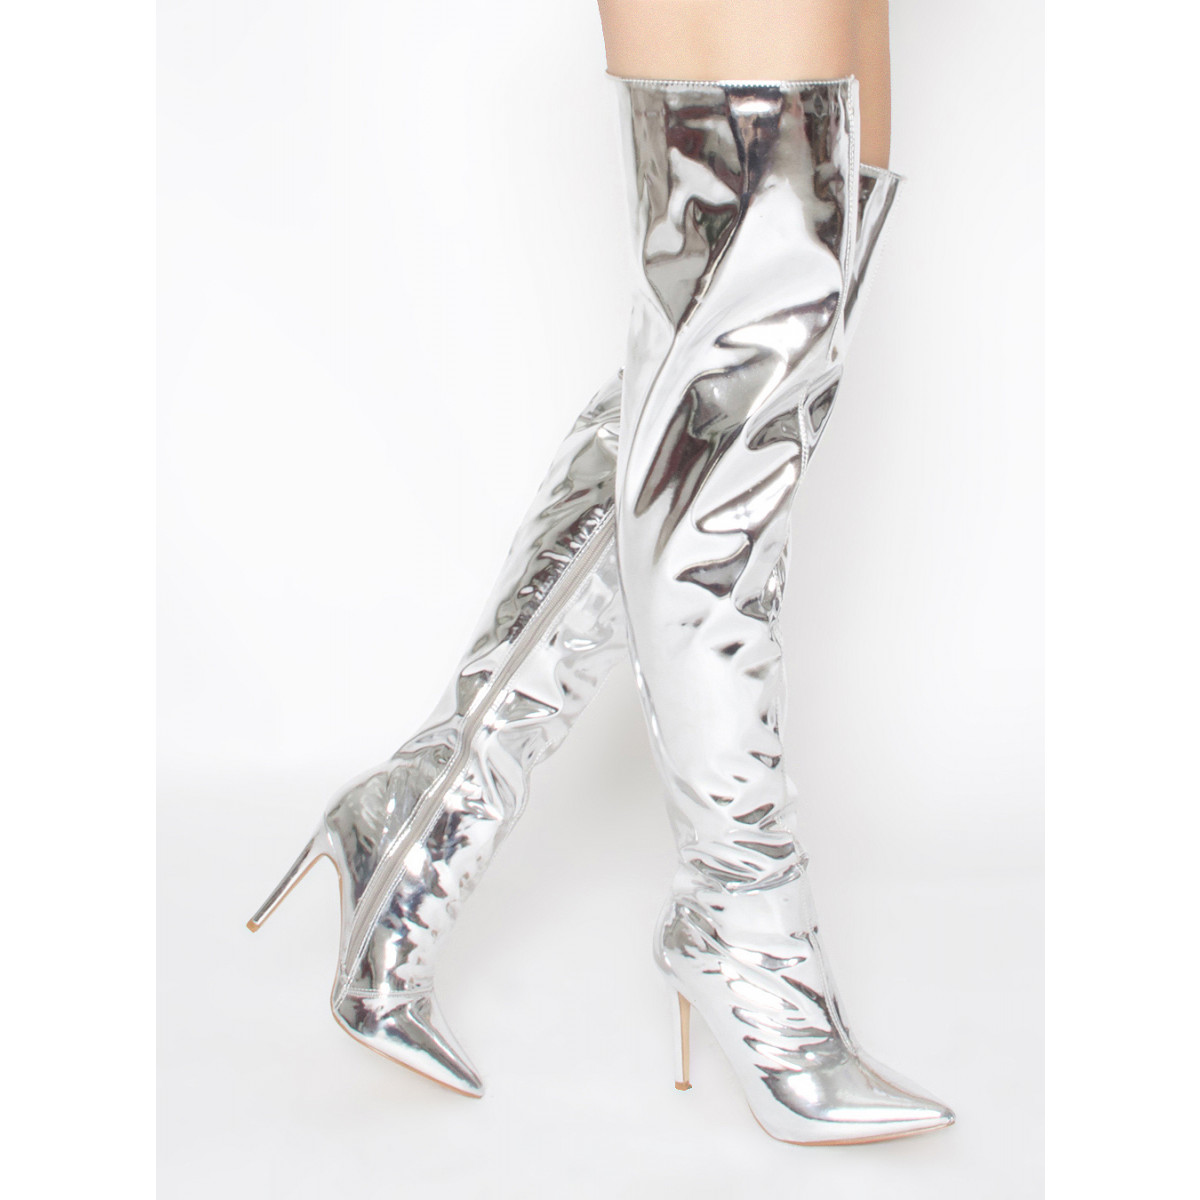 Aden Silver Metallic Stiletto Thigh High Boots : Simmi Shoes